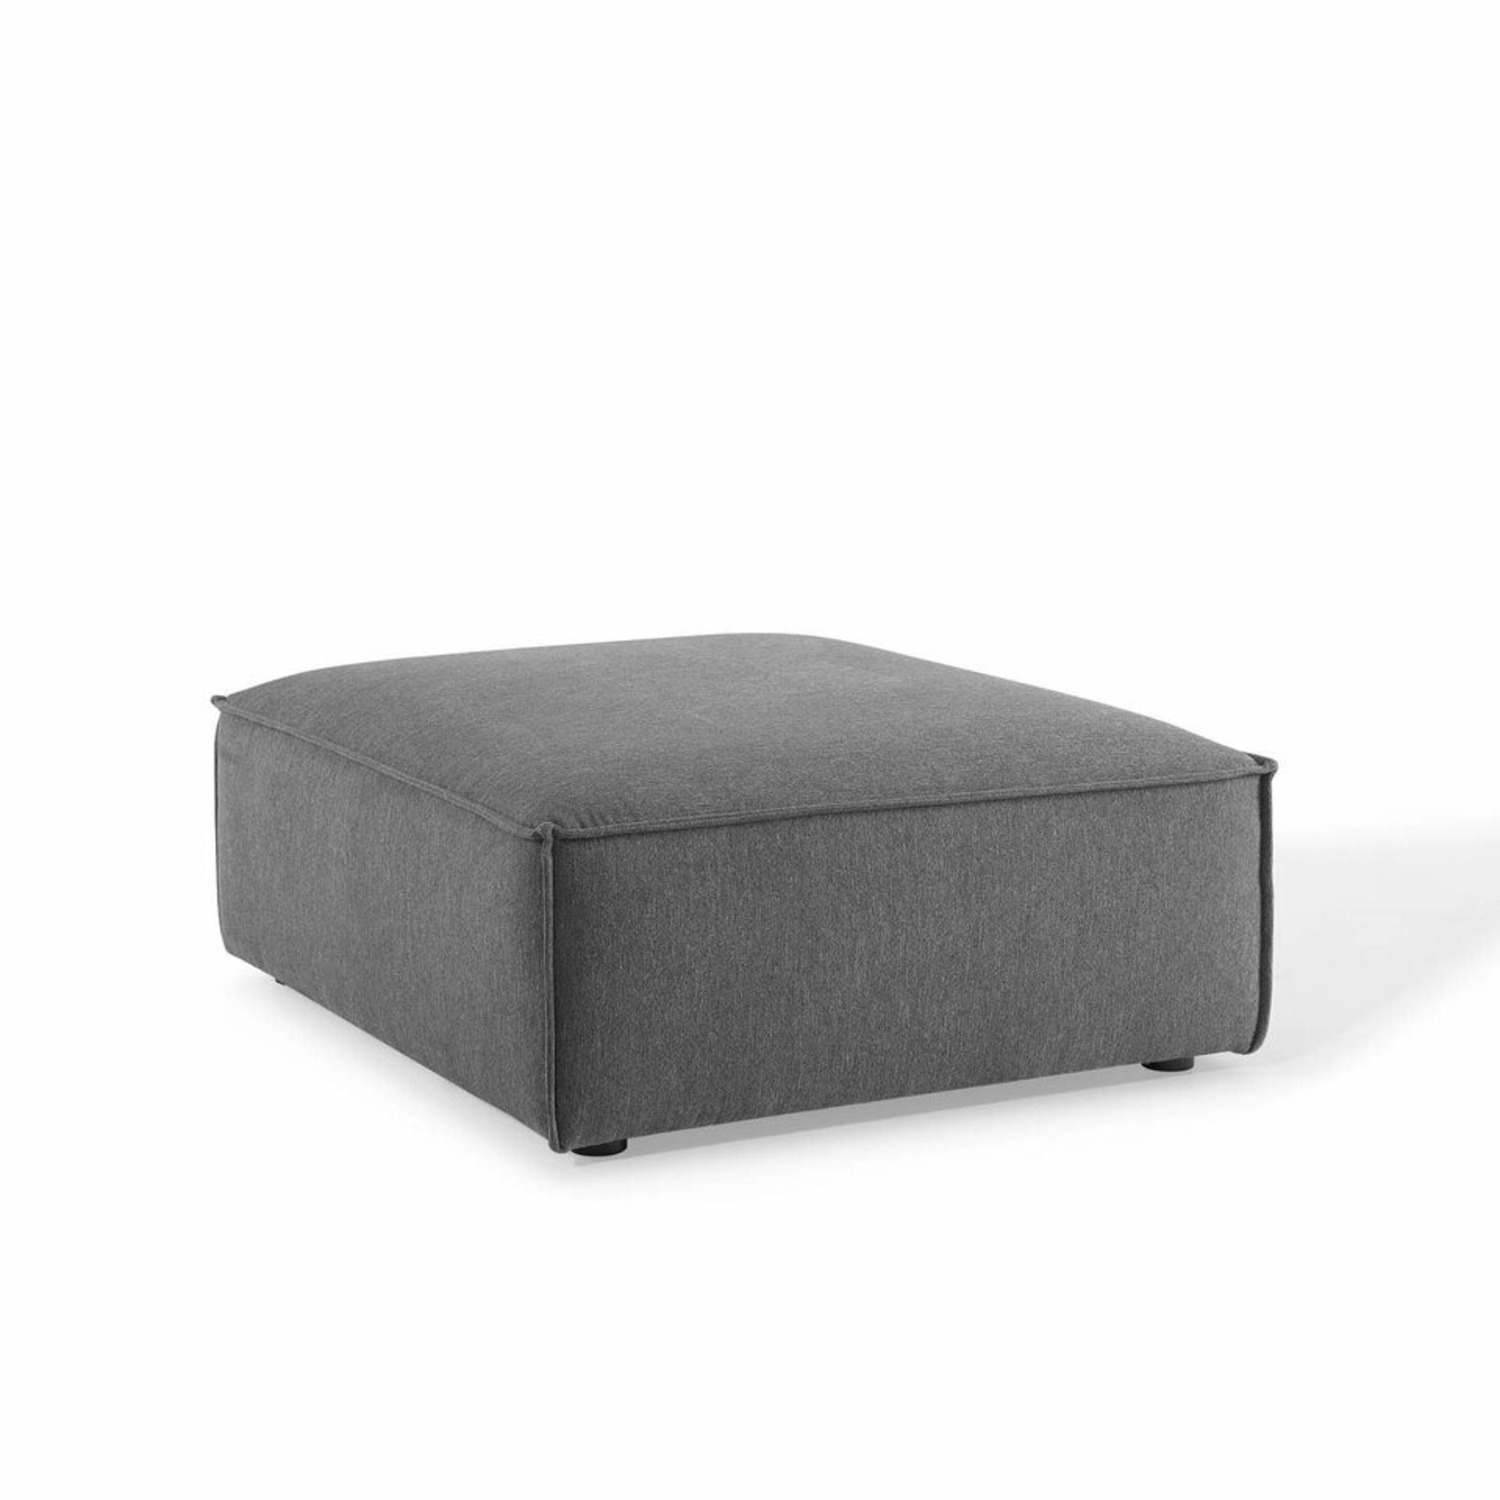 7-Piece Sectional Sofa In Charcoal Upholstery - image-9